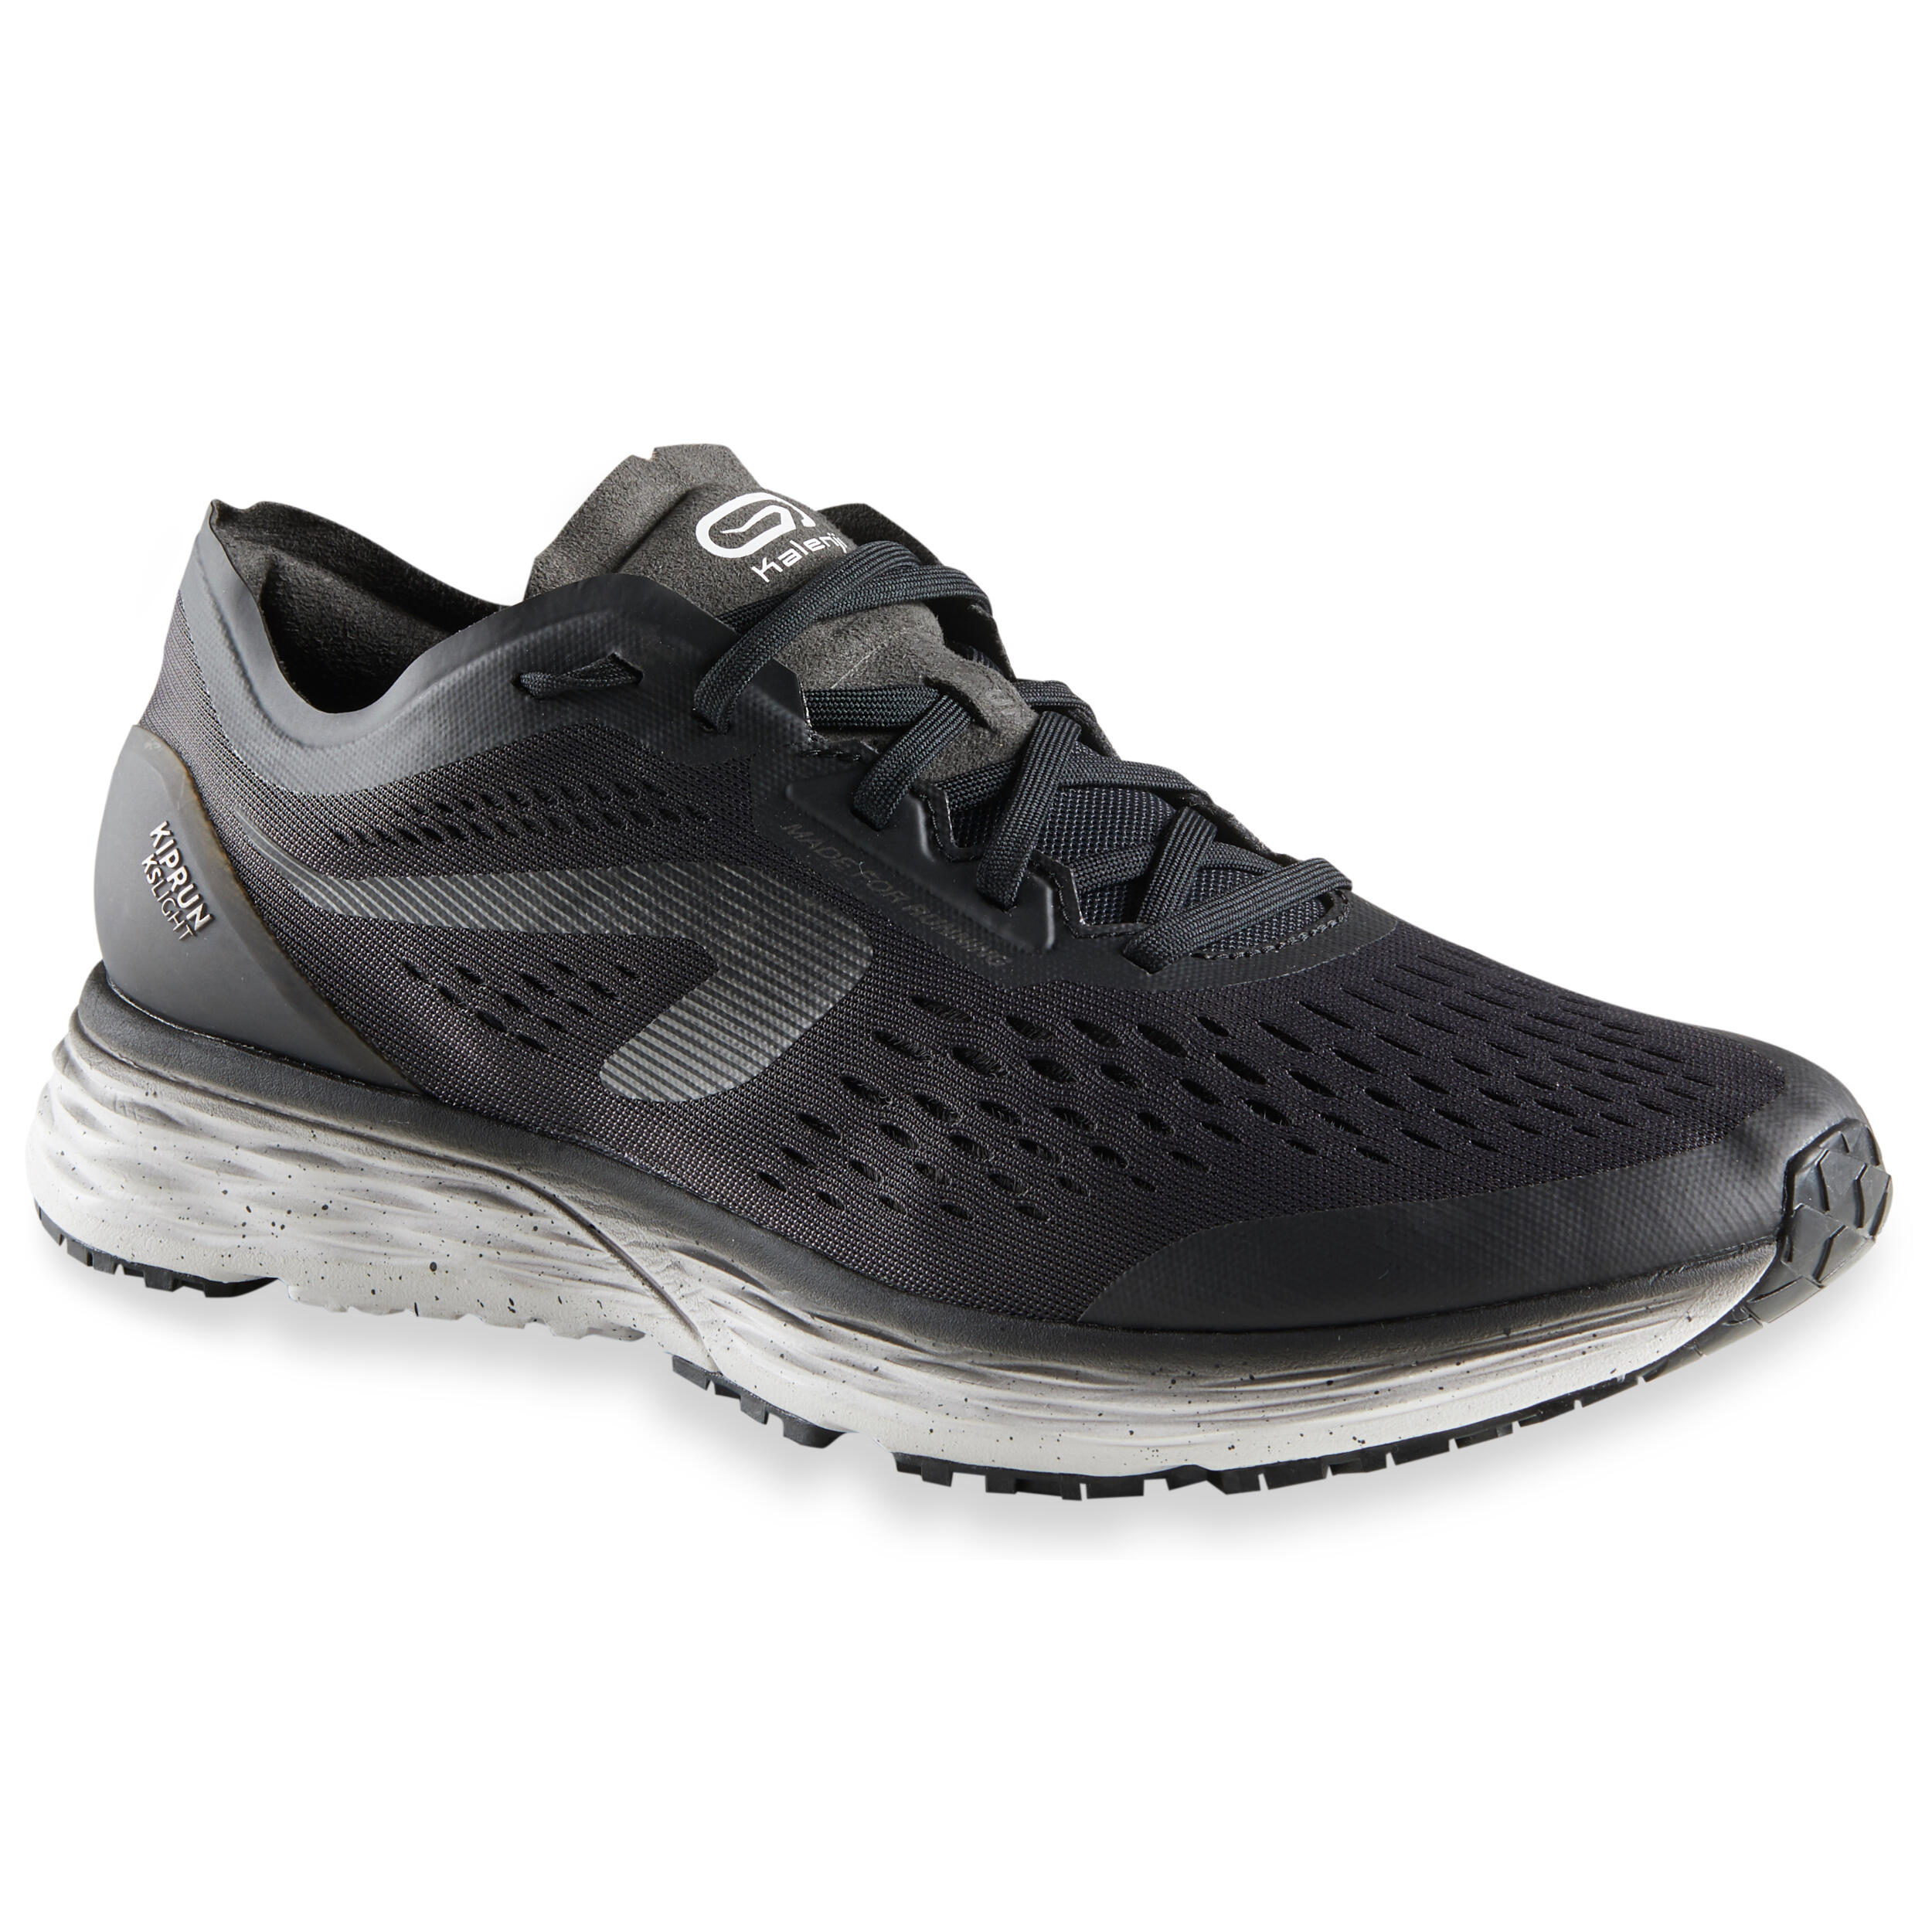 a2fed6b3 Comprar Zapatillas de Running Online | Decathlon